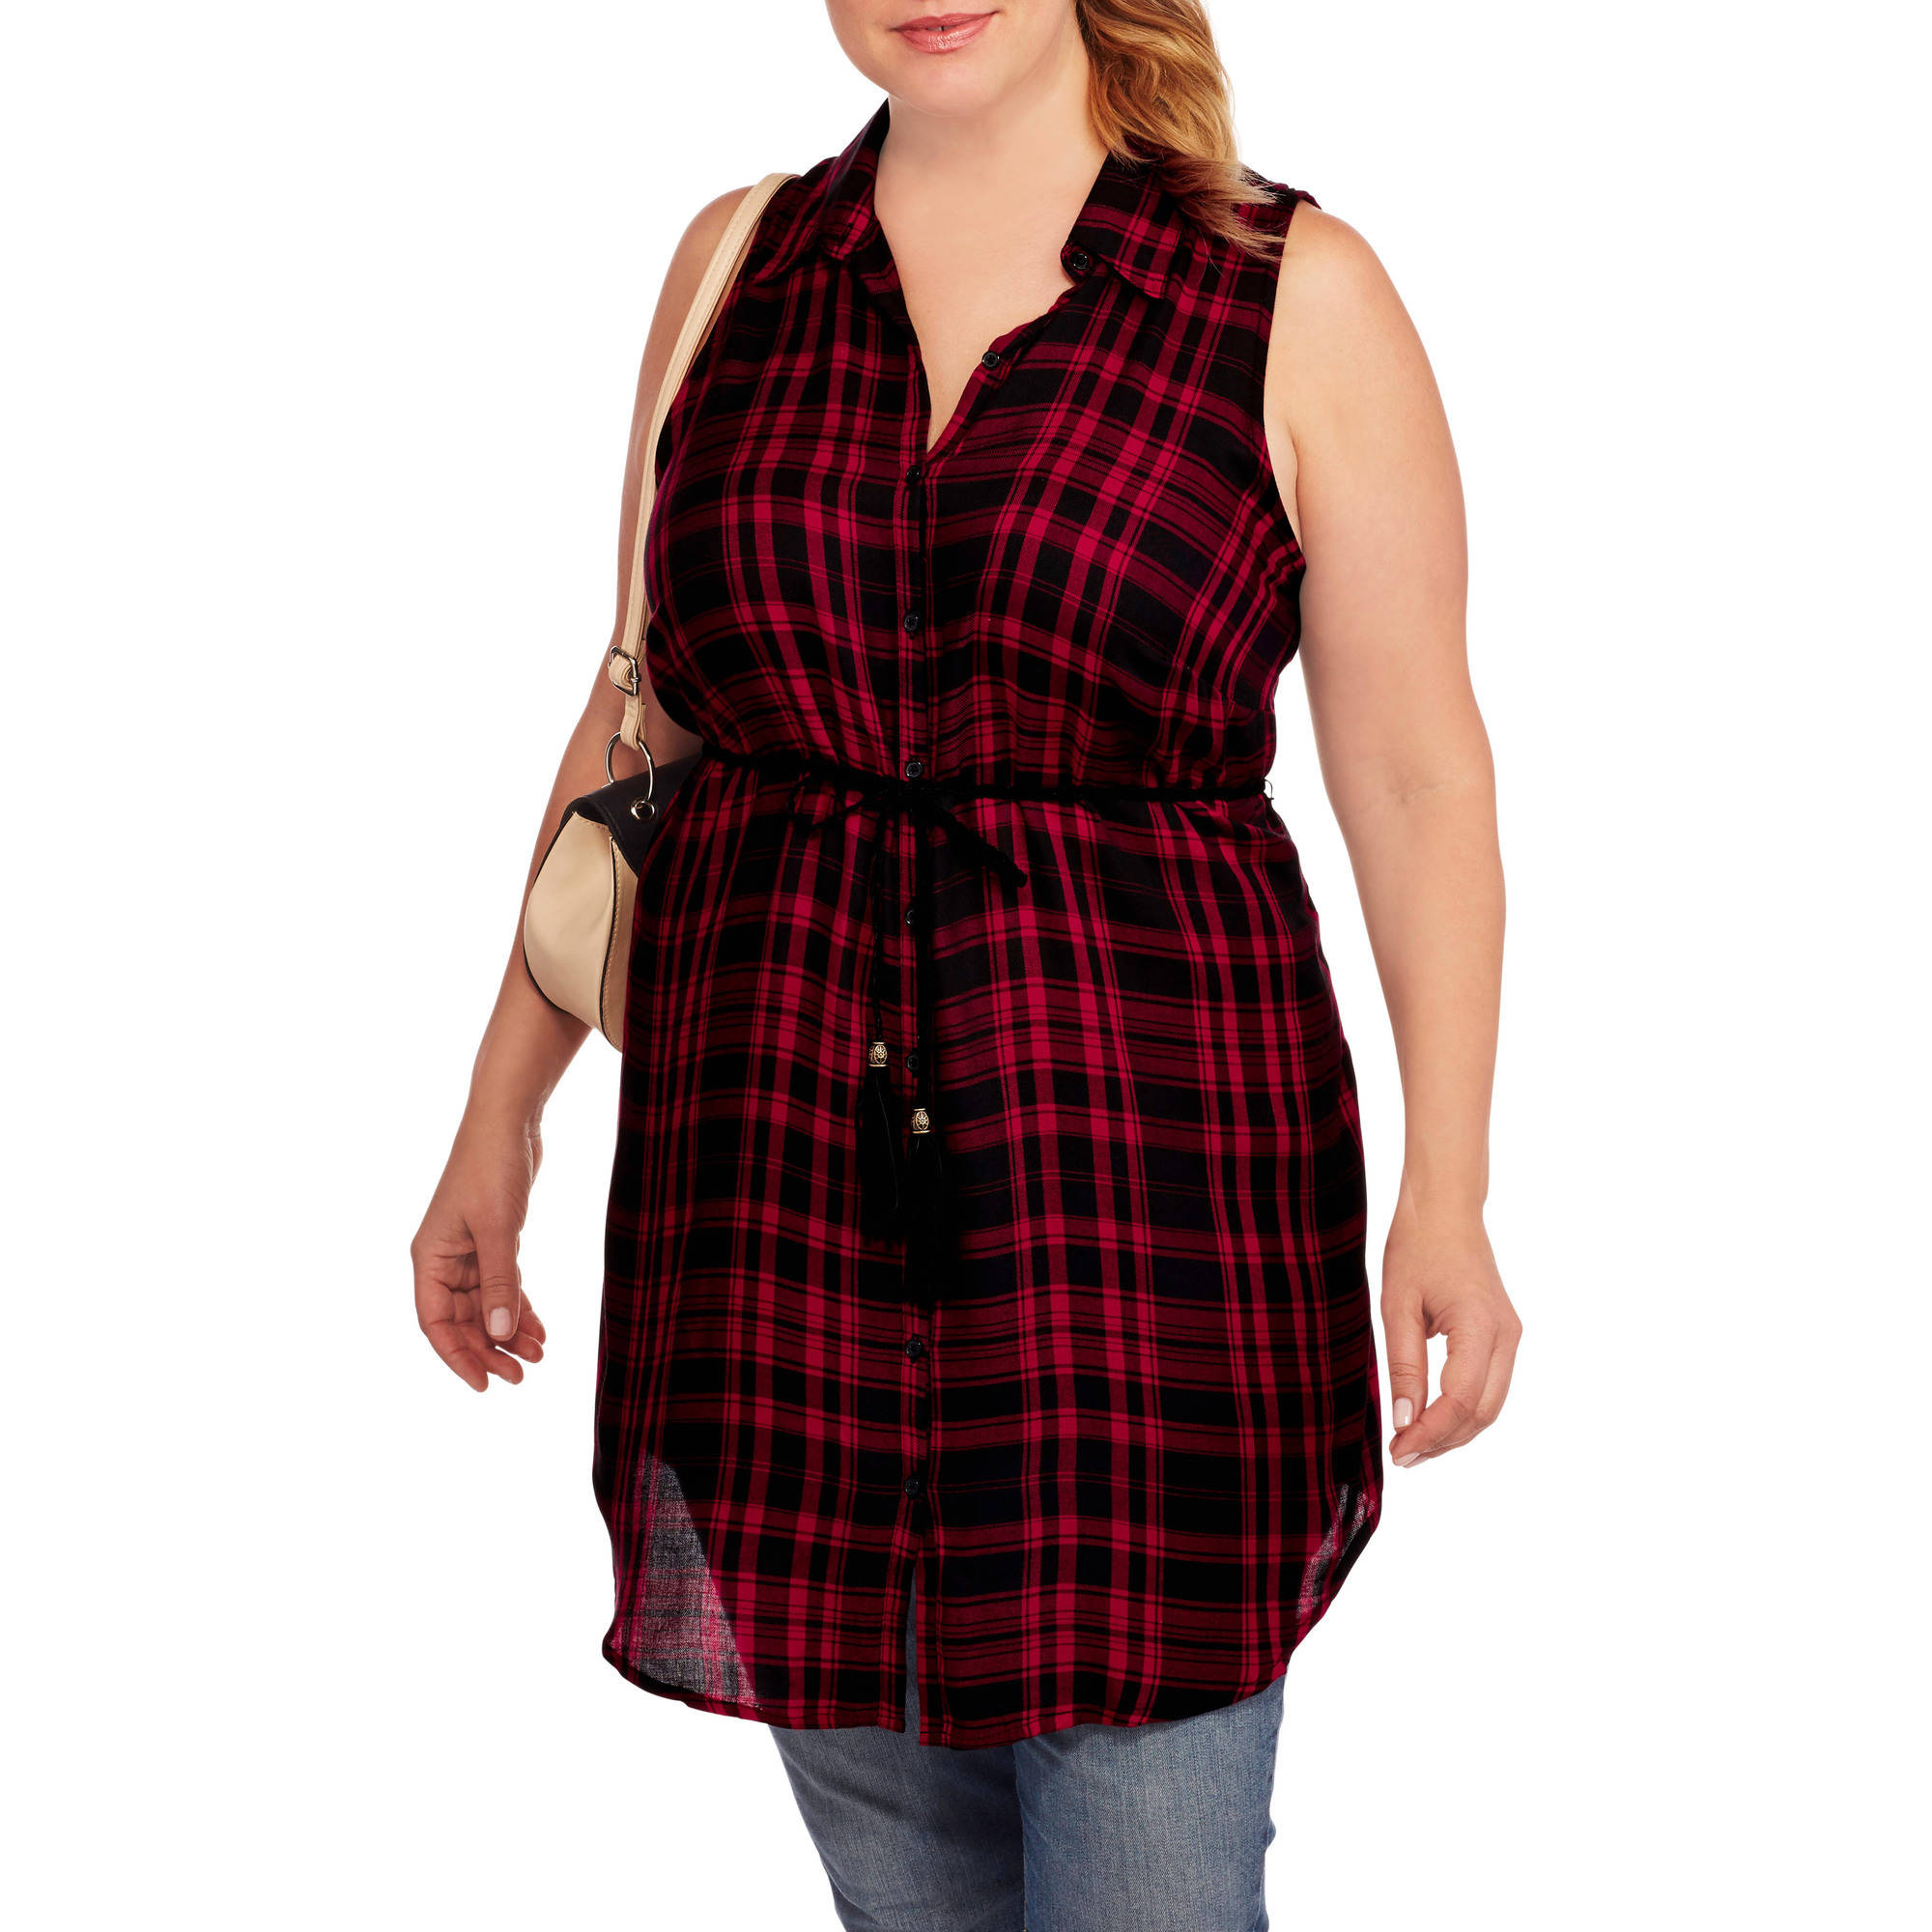 No Boundaries Women's Plus-Size Braided Belted Woven Tunic Shirt